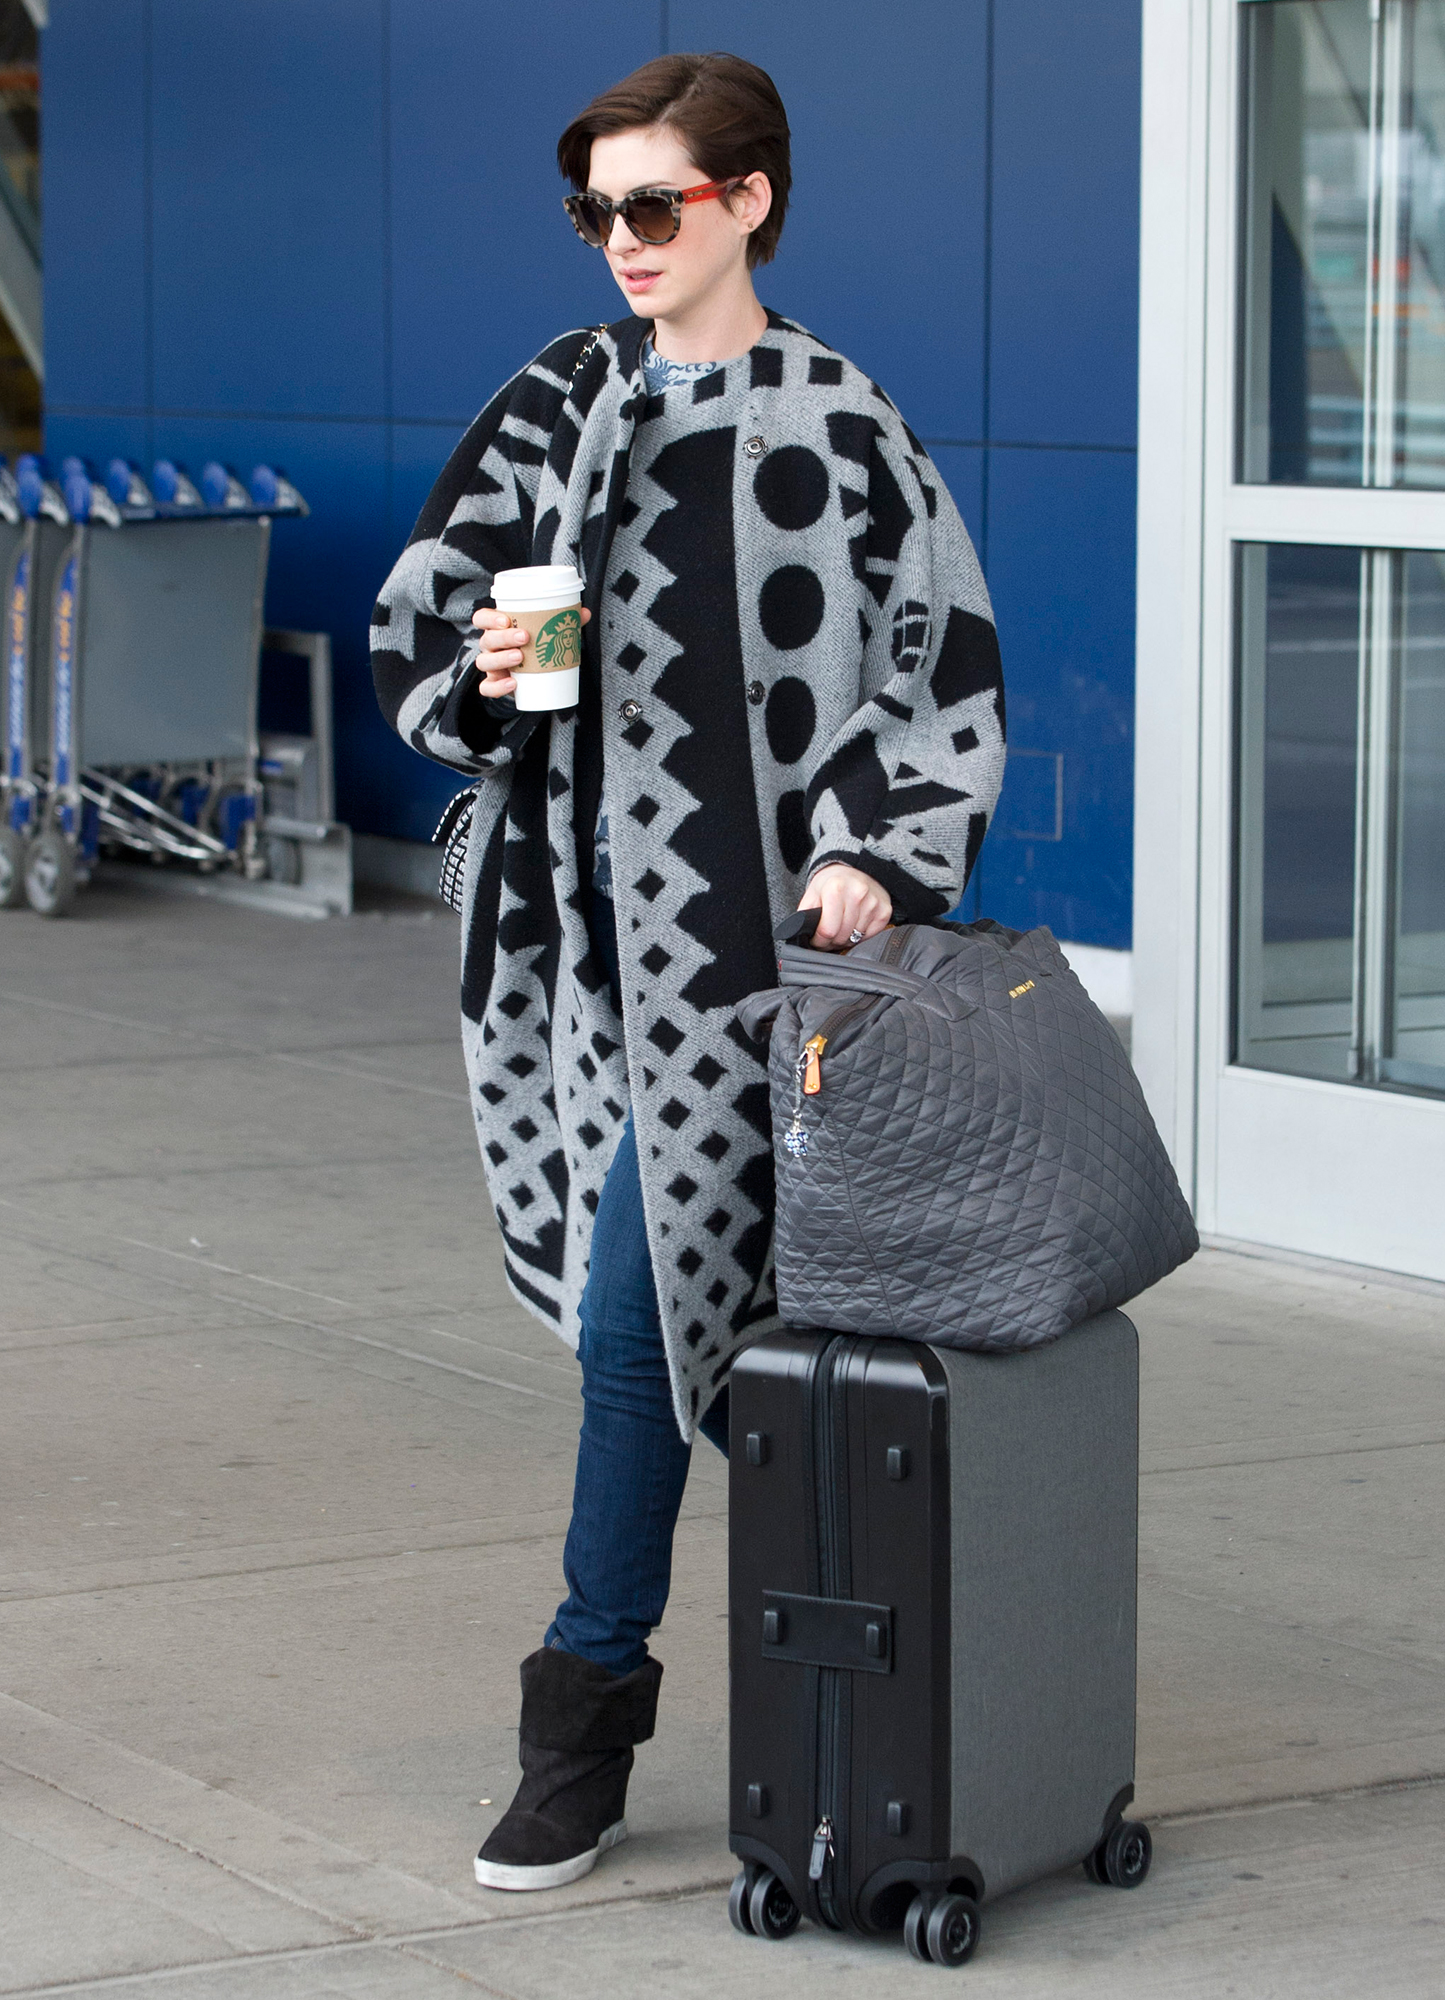 Anne Hathaway arrives at JFK airport in NYC